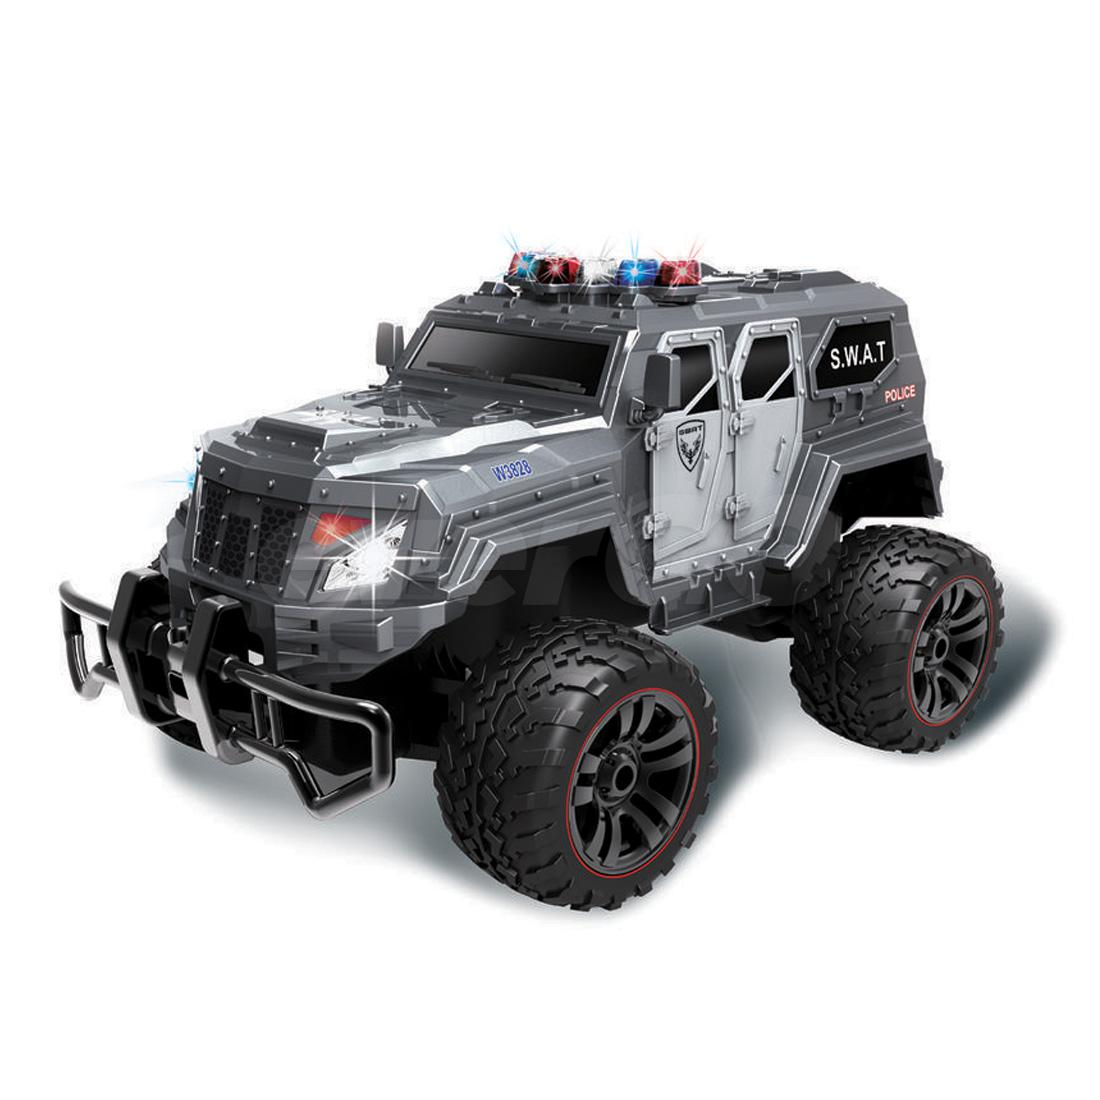 S.W.A.T. Police Pioneer RC 39 cm